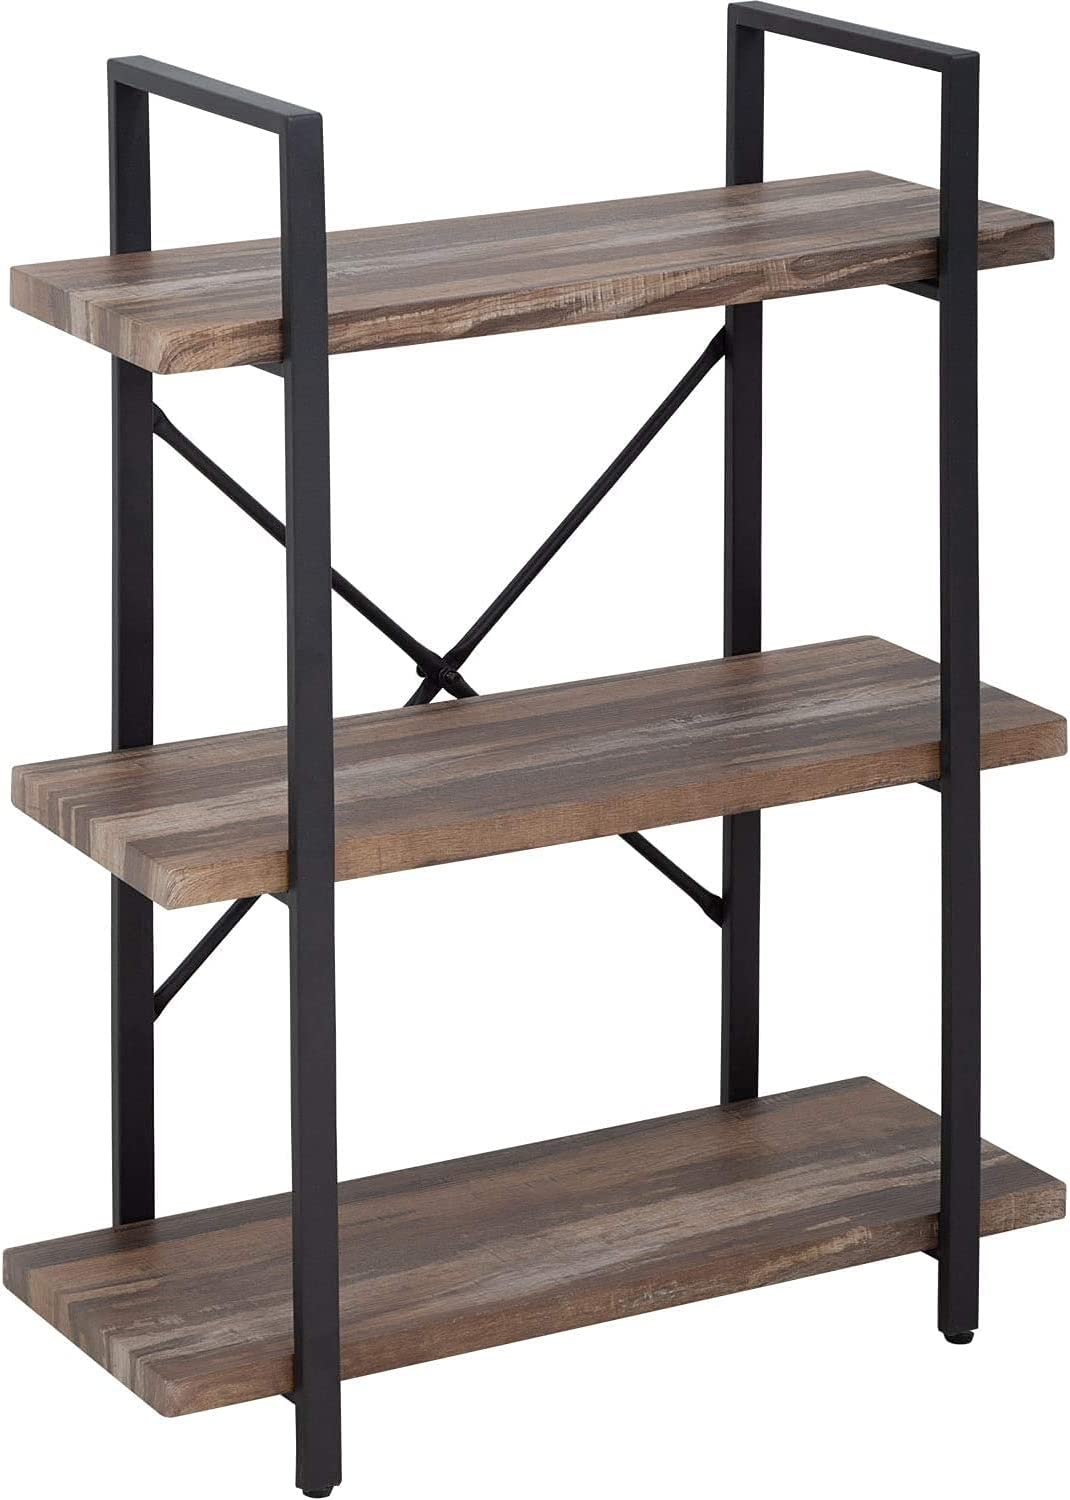 40-inch 3-Tier Solid Wood Bookcase Vintage Ope New item Industrial Rustic Max 81% OFF